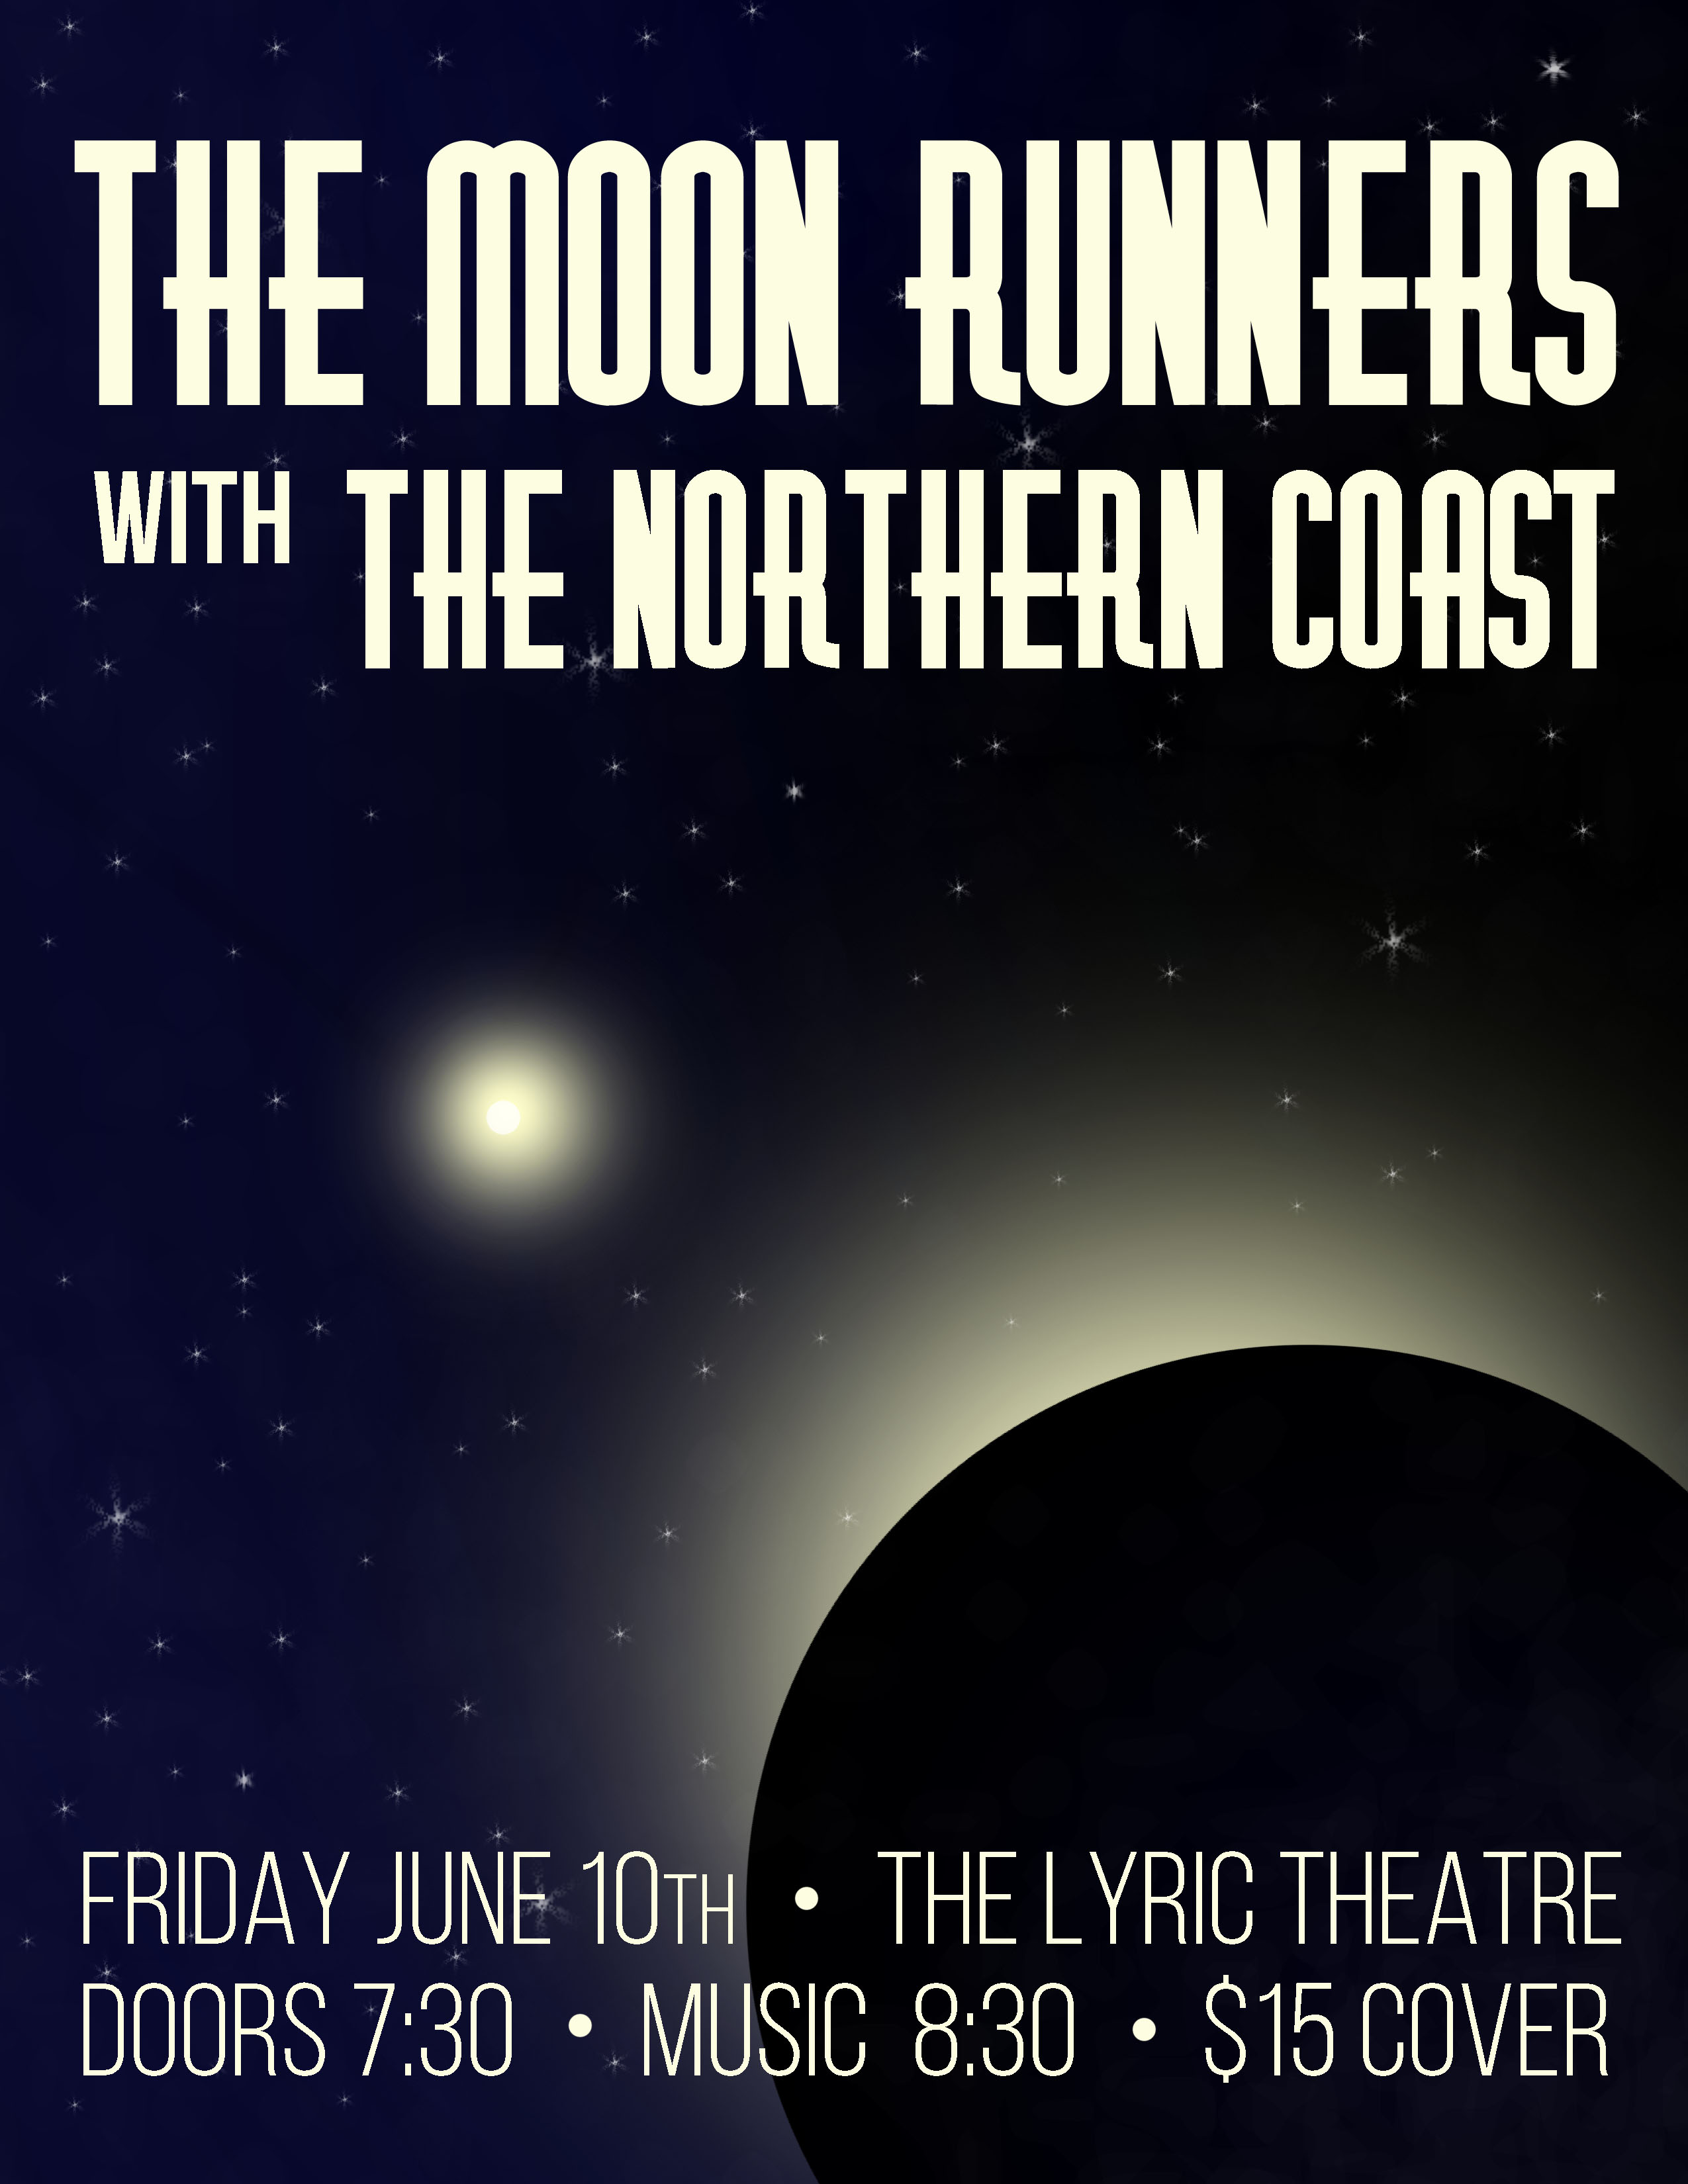 Moon Runners Poster, Jun 2016